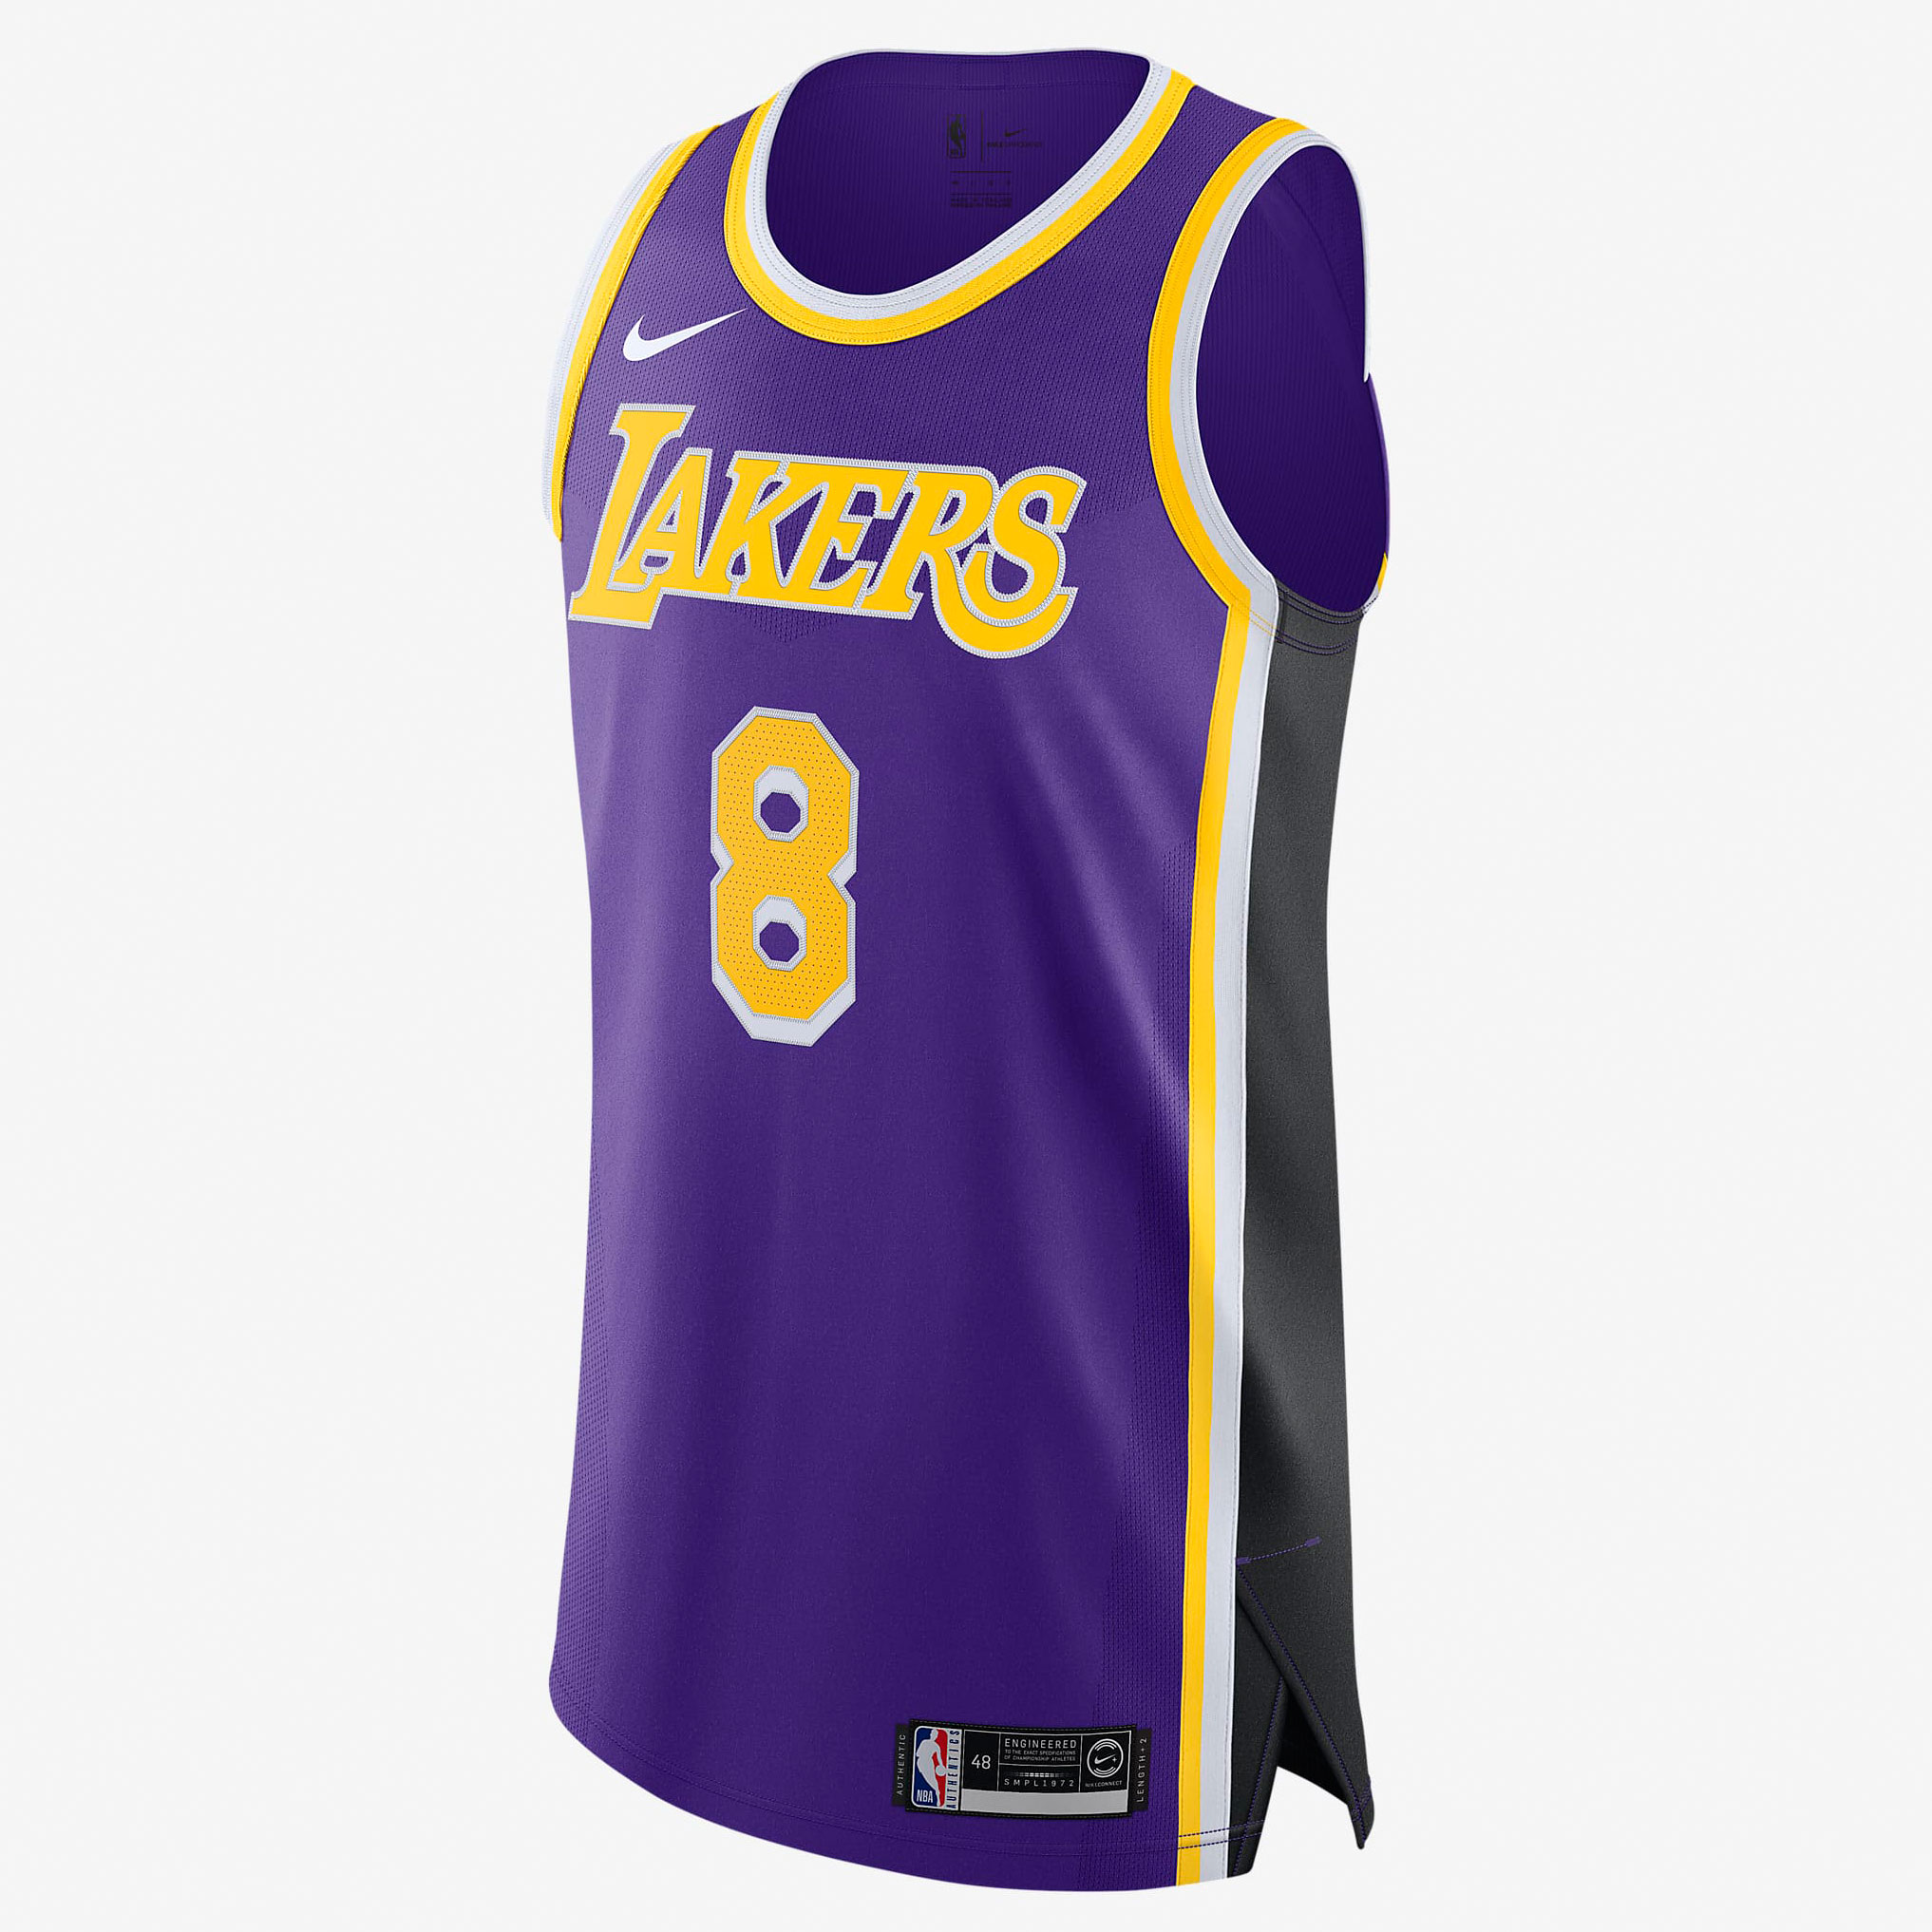 kobe-bryant-nike-nba-statement-edtion-jersey-8-purple-front